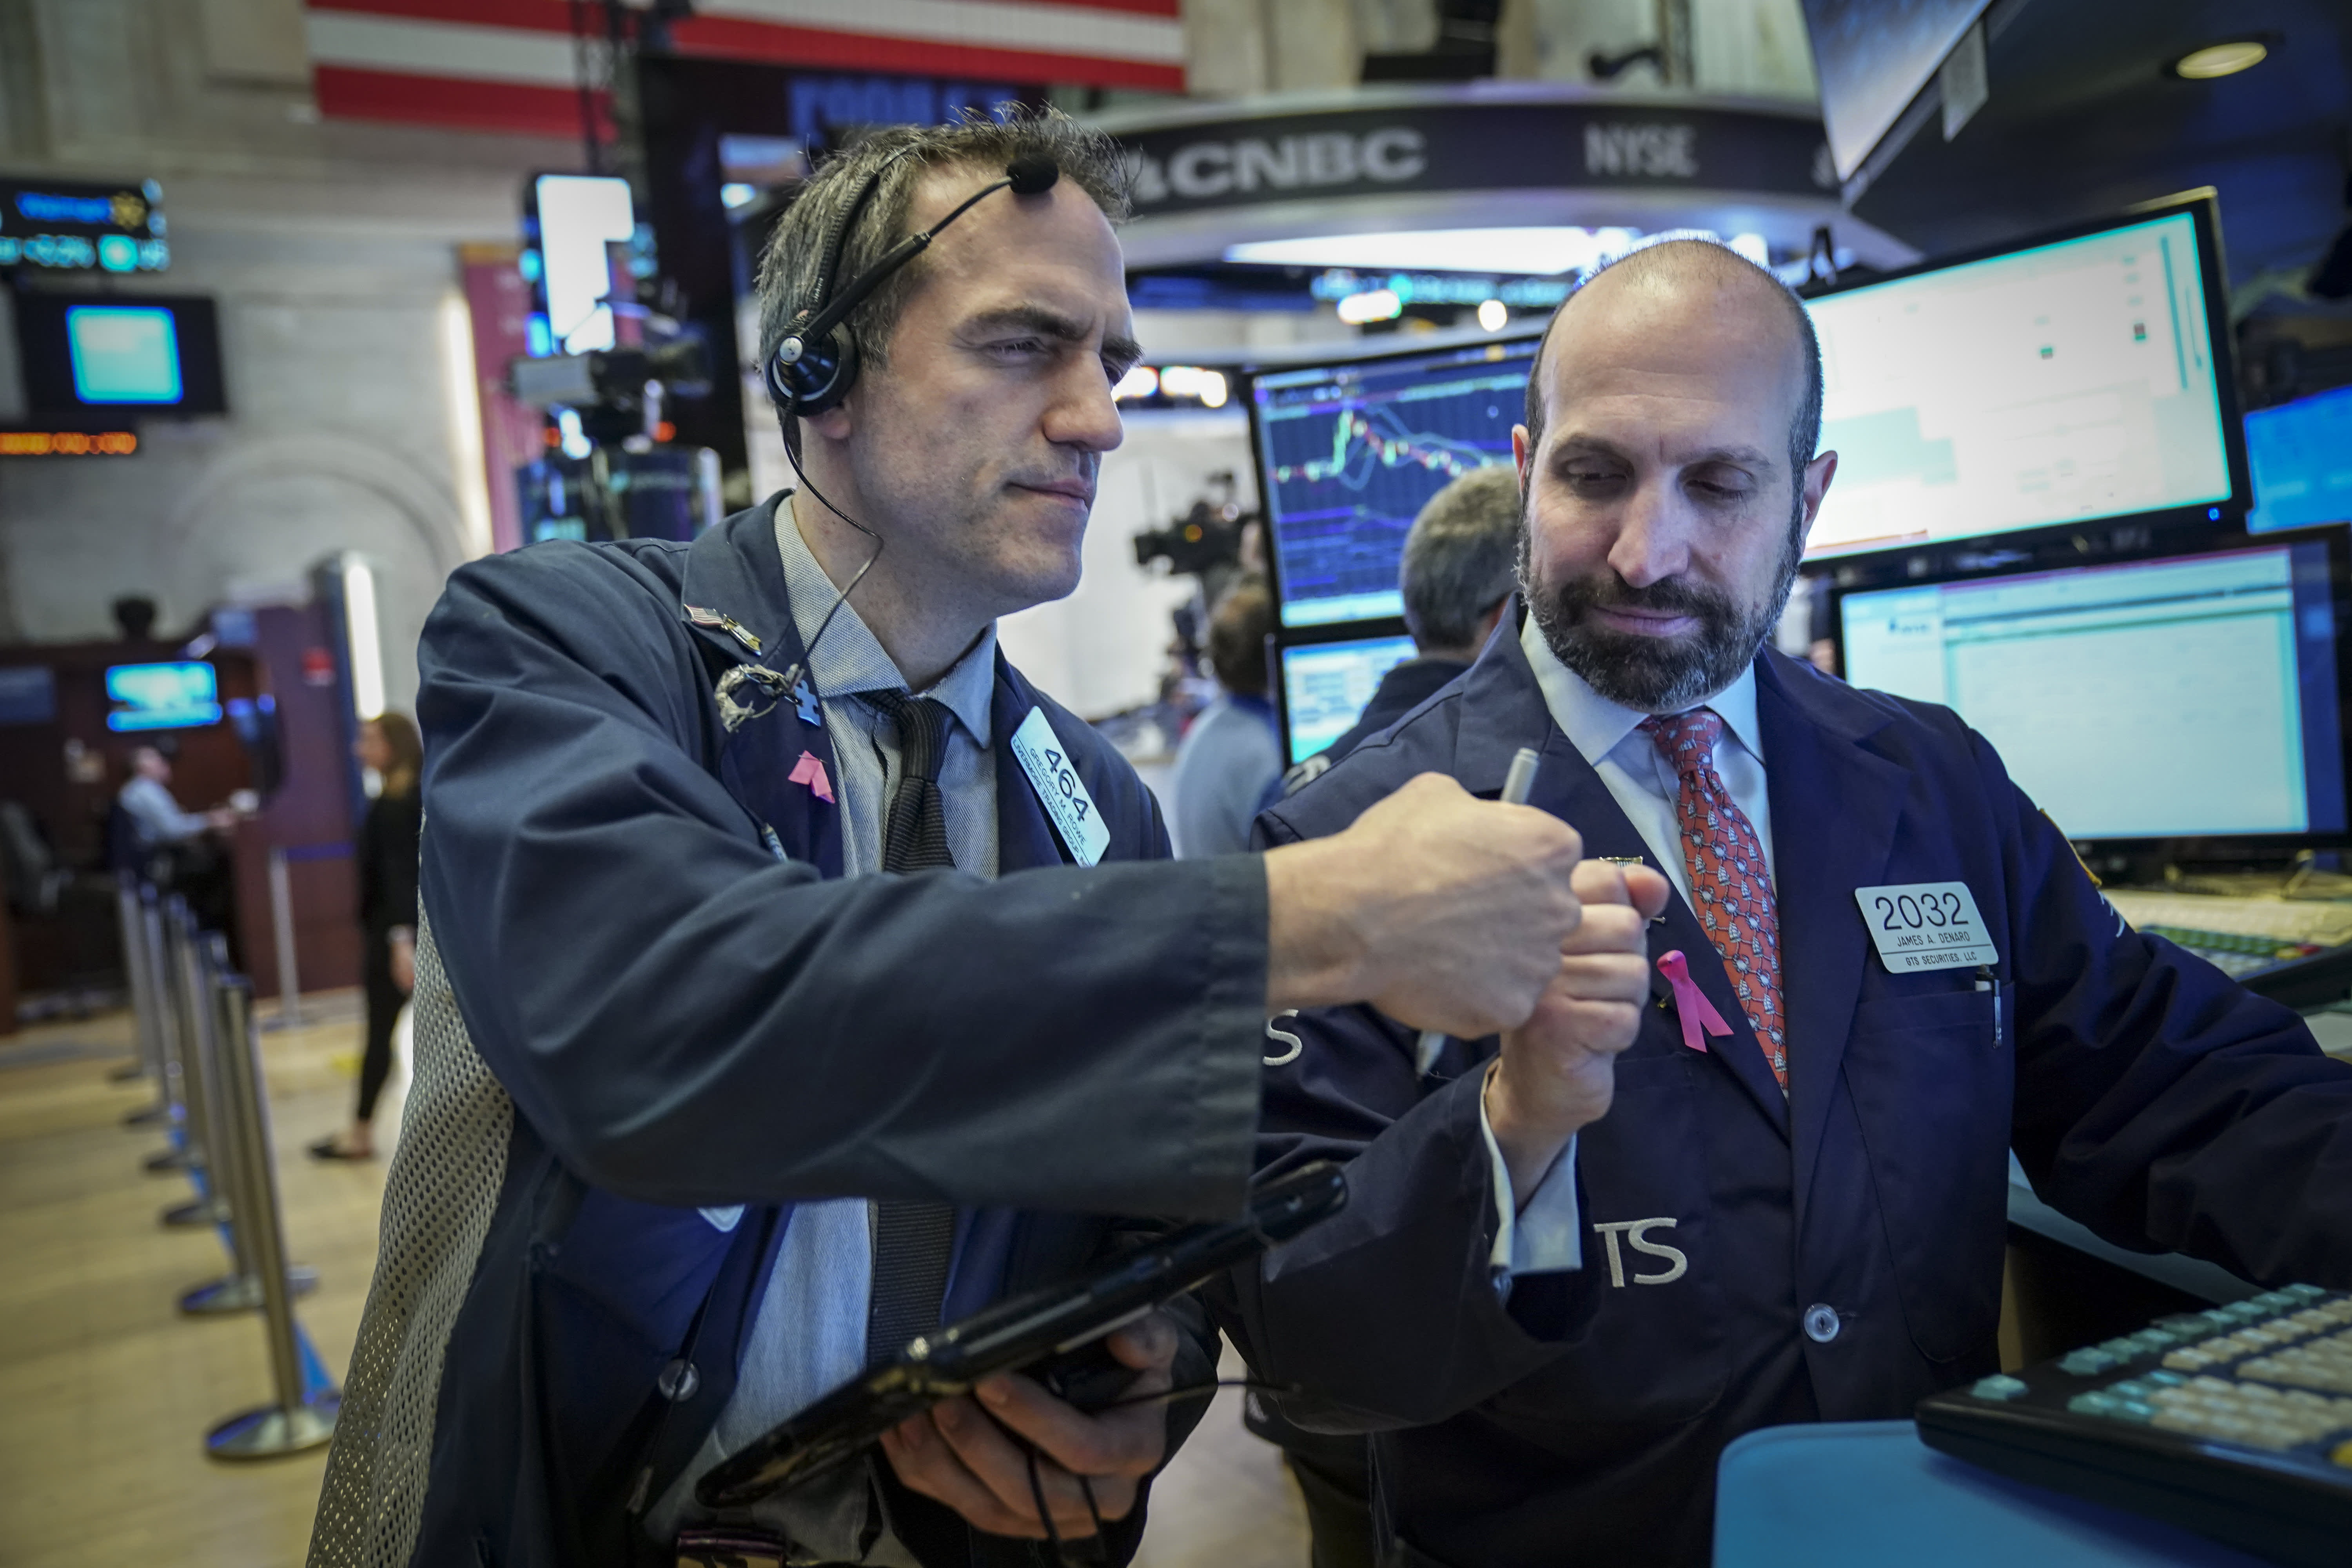 GP: Traders fist pump positive markets Stock Markets Open One Day After Steep Drop Over Apple's Revised Forecast